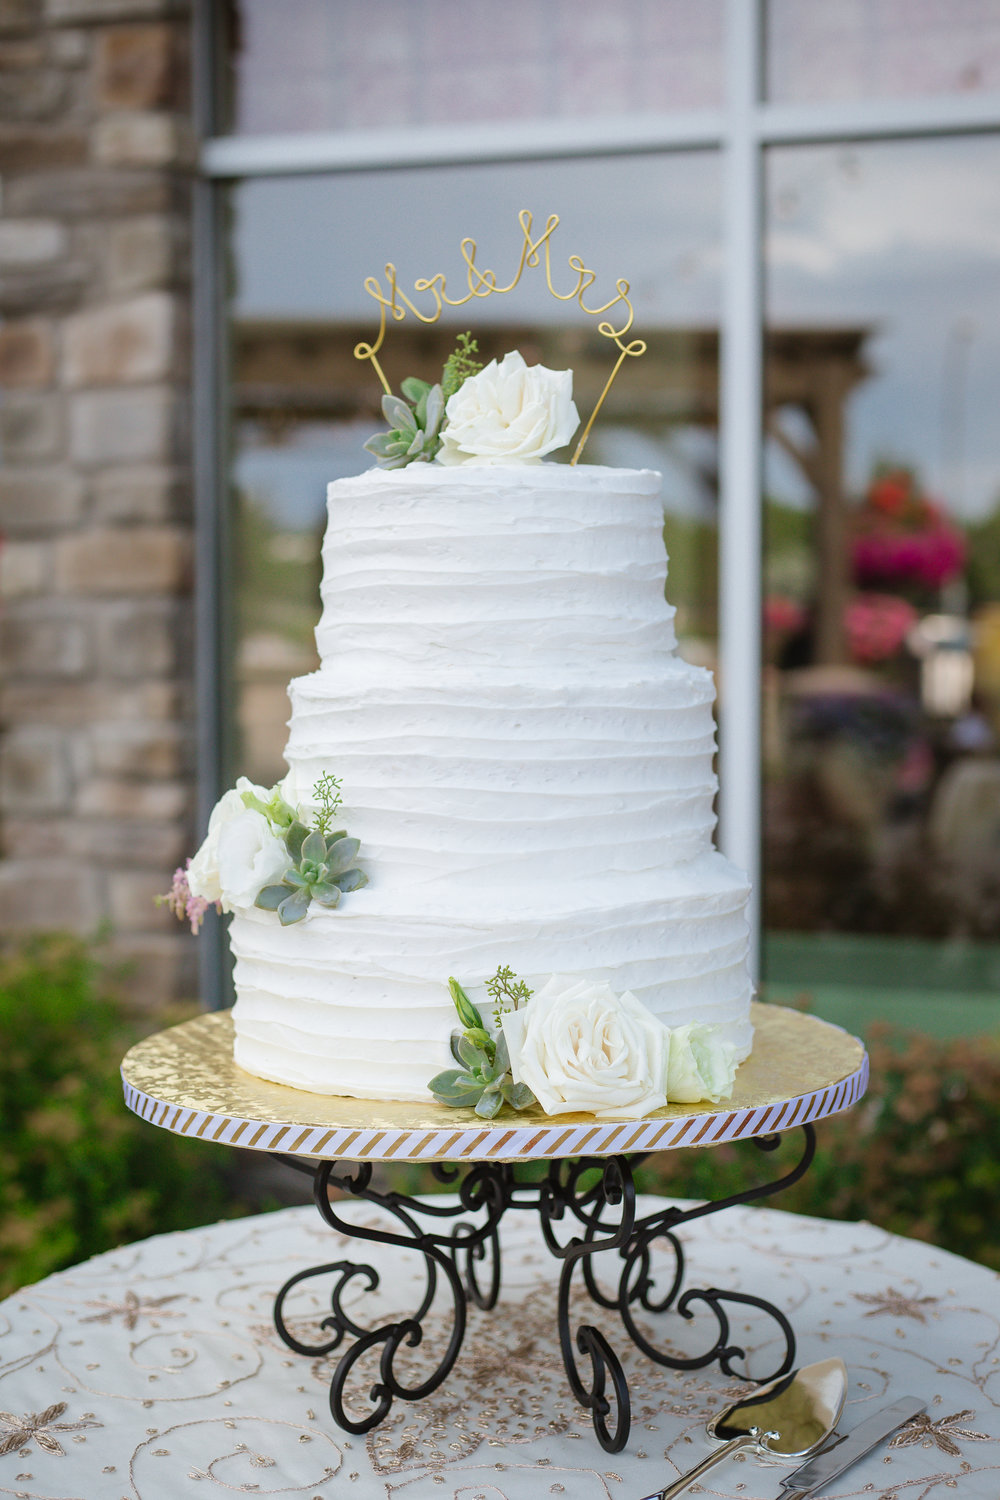 Courtney Volksen Photography | Beautiful classic wedding cake for an LDS bride in Idaho Falls, Idaho